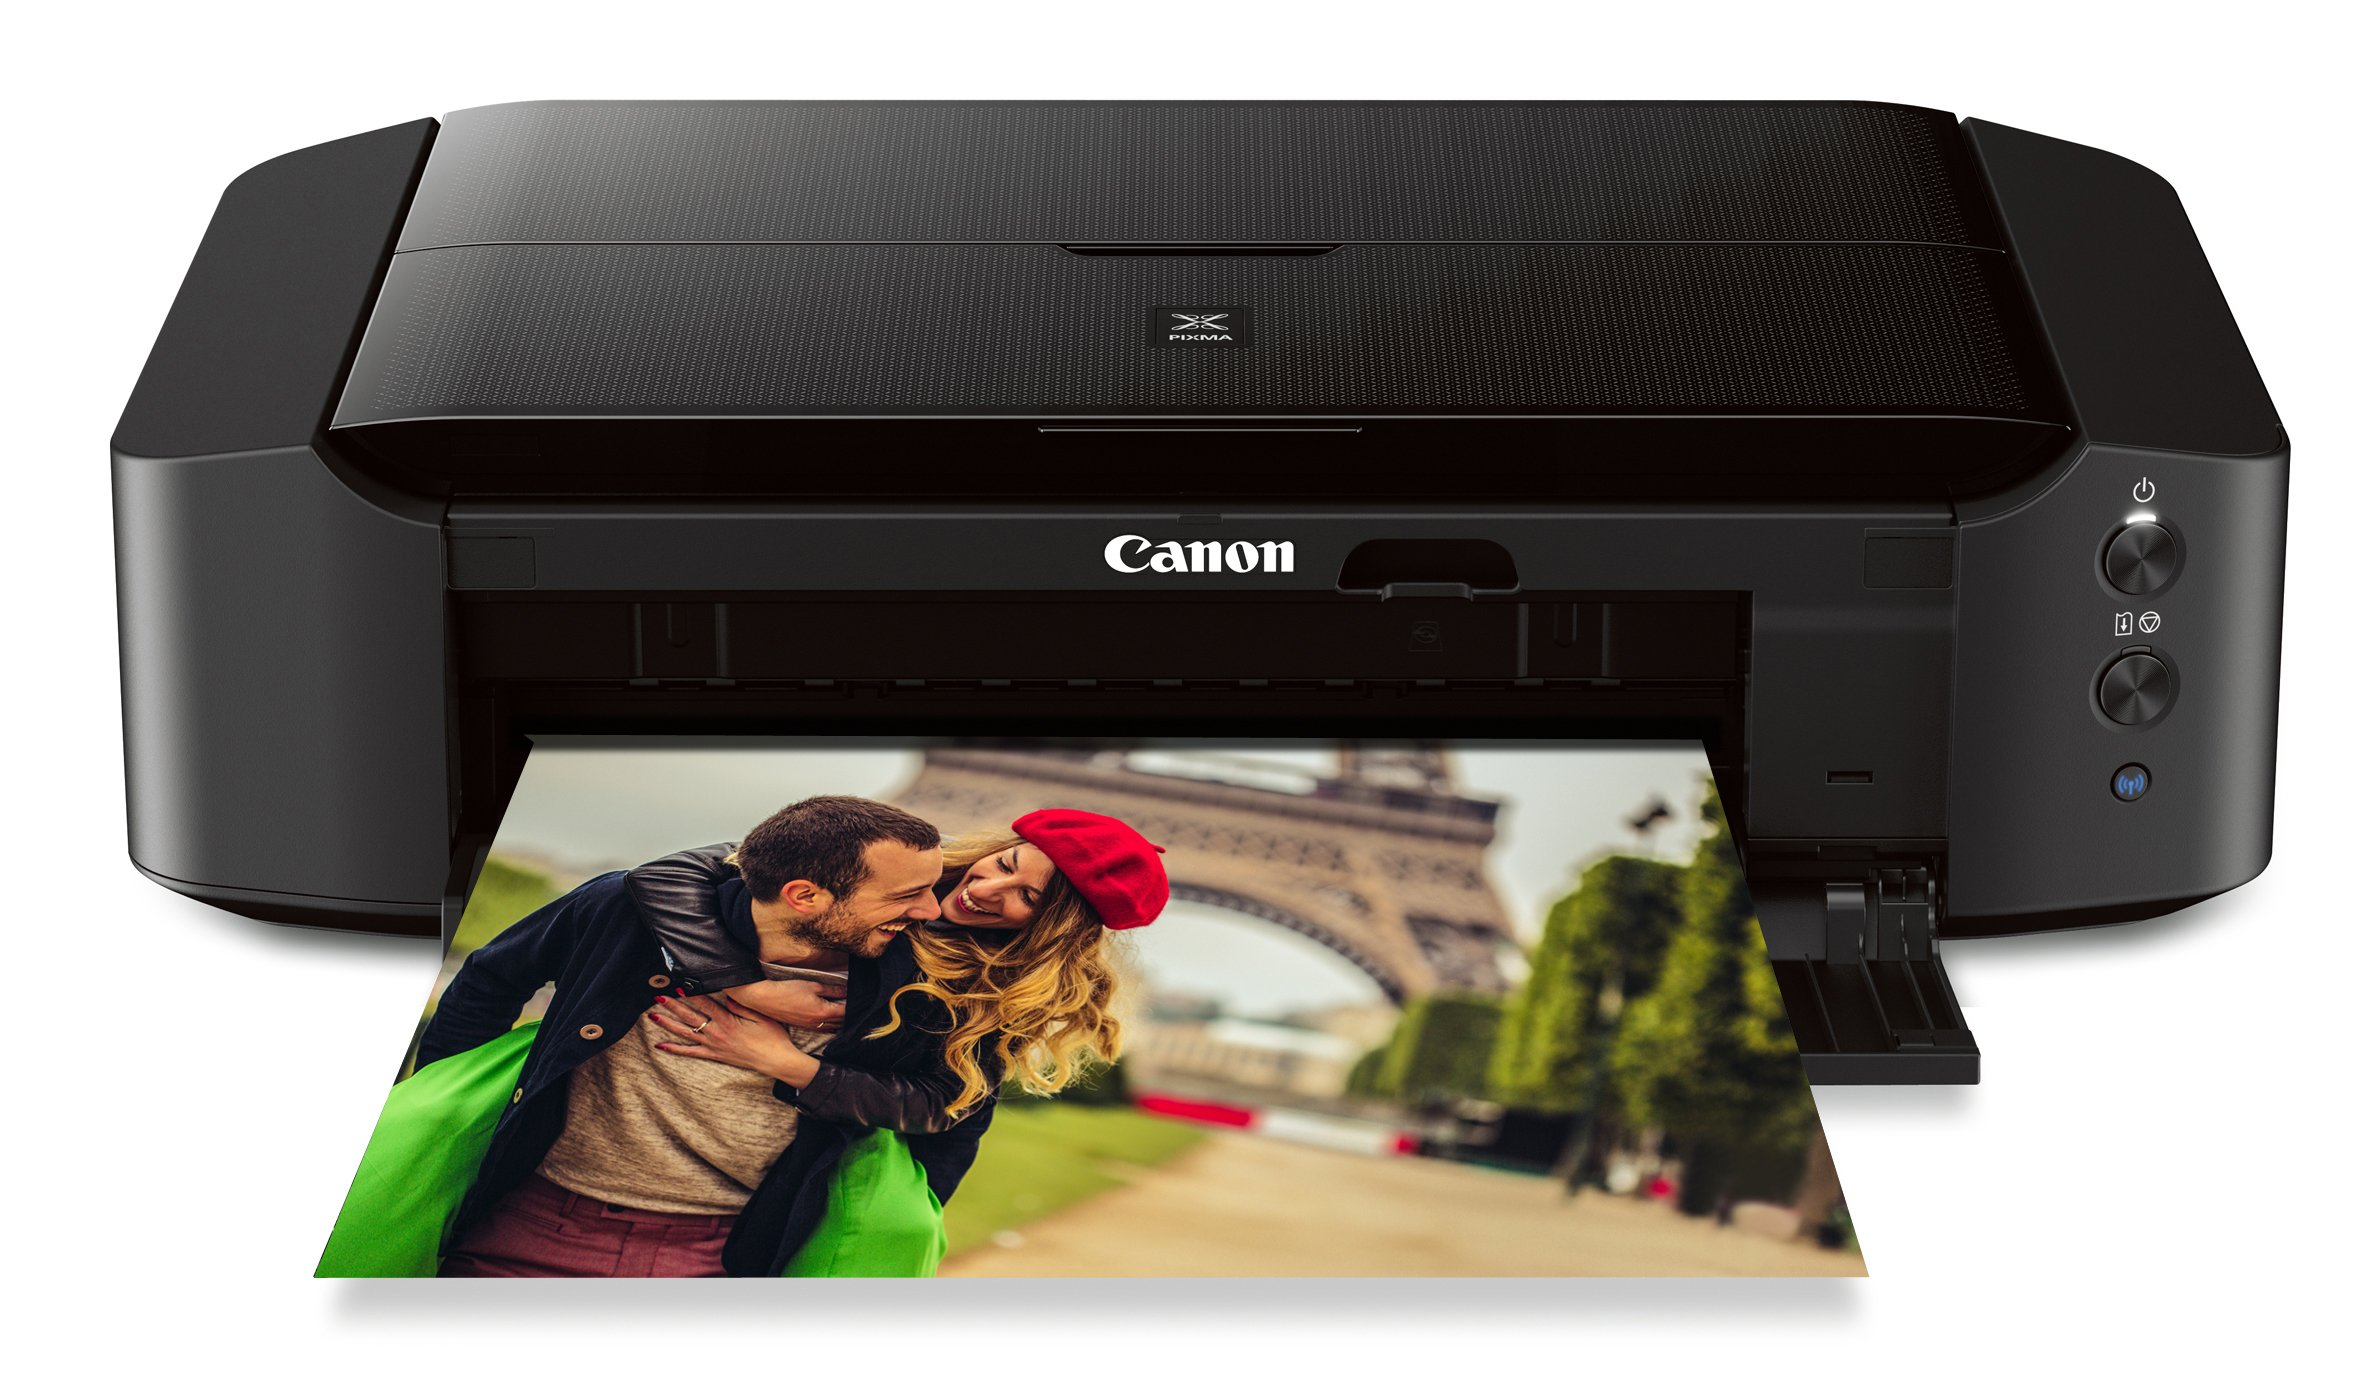 Canon iP8720 Wireless Printer, AirPrint and Cloud Compatible by Canon